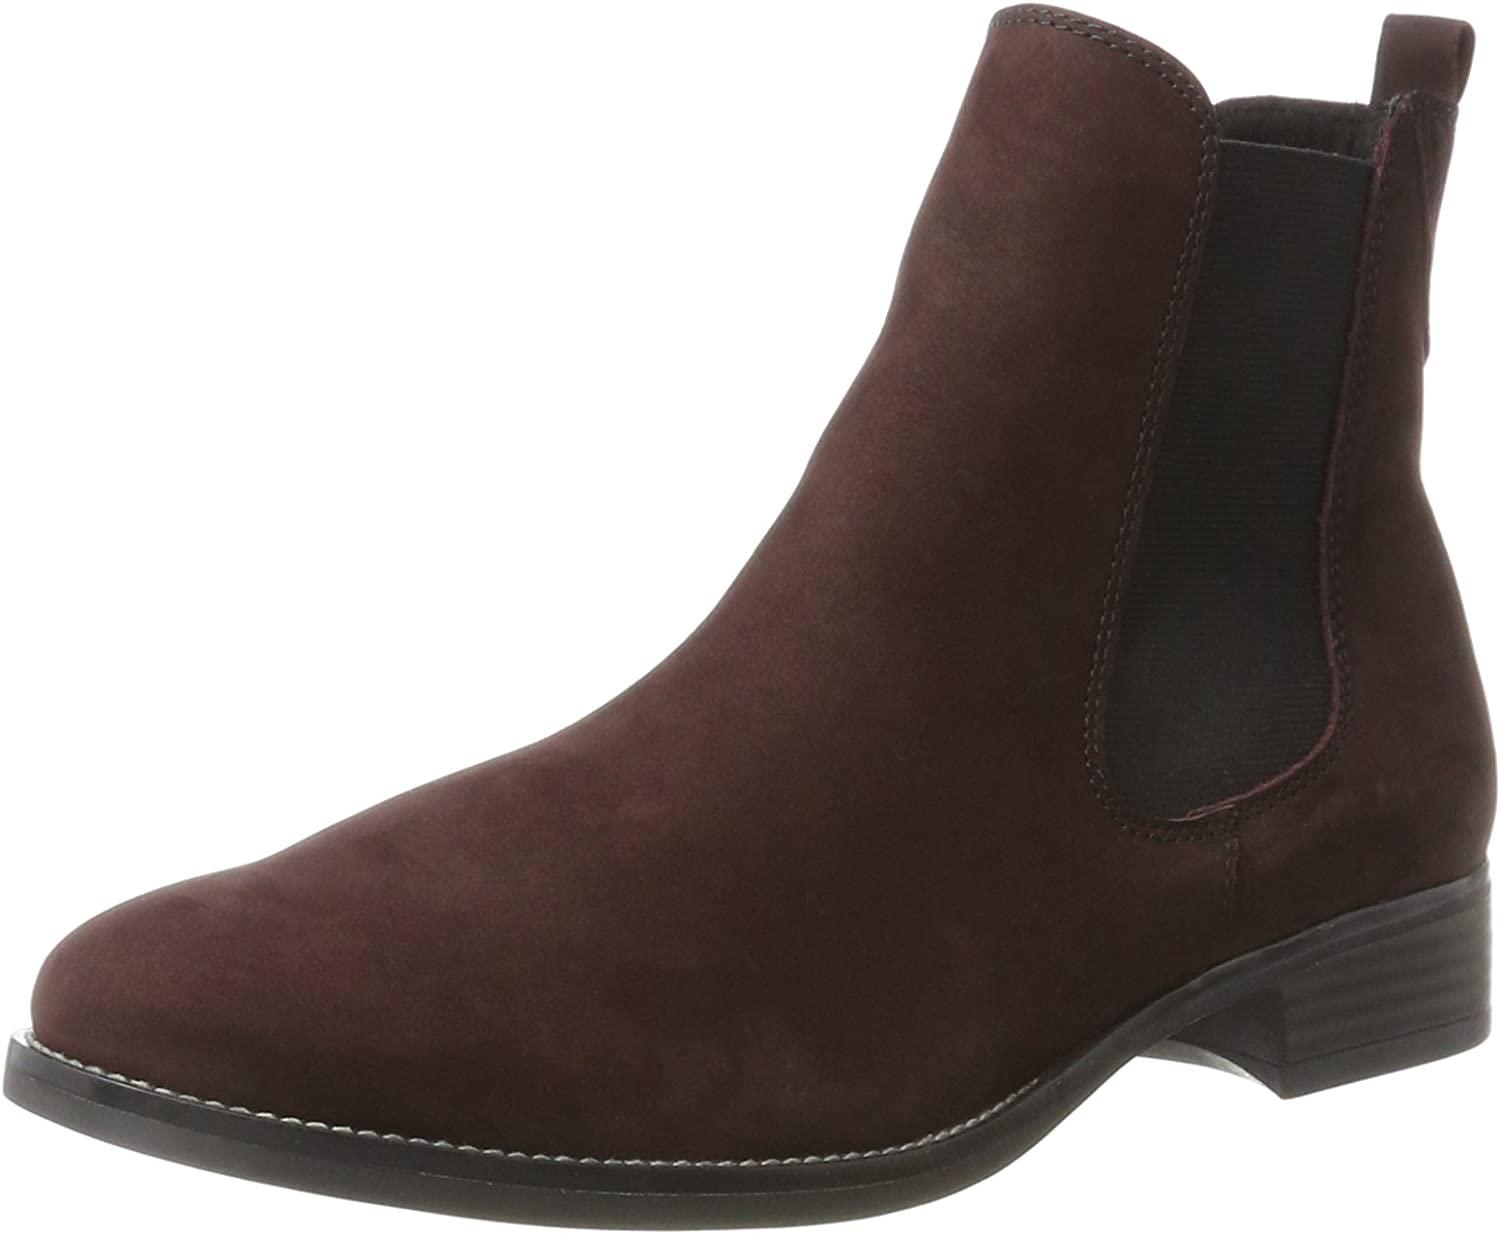 Caprice Dark Bordeaux Ankle Boot Womens Chelsea Boots